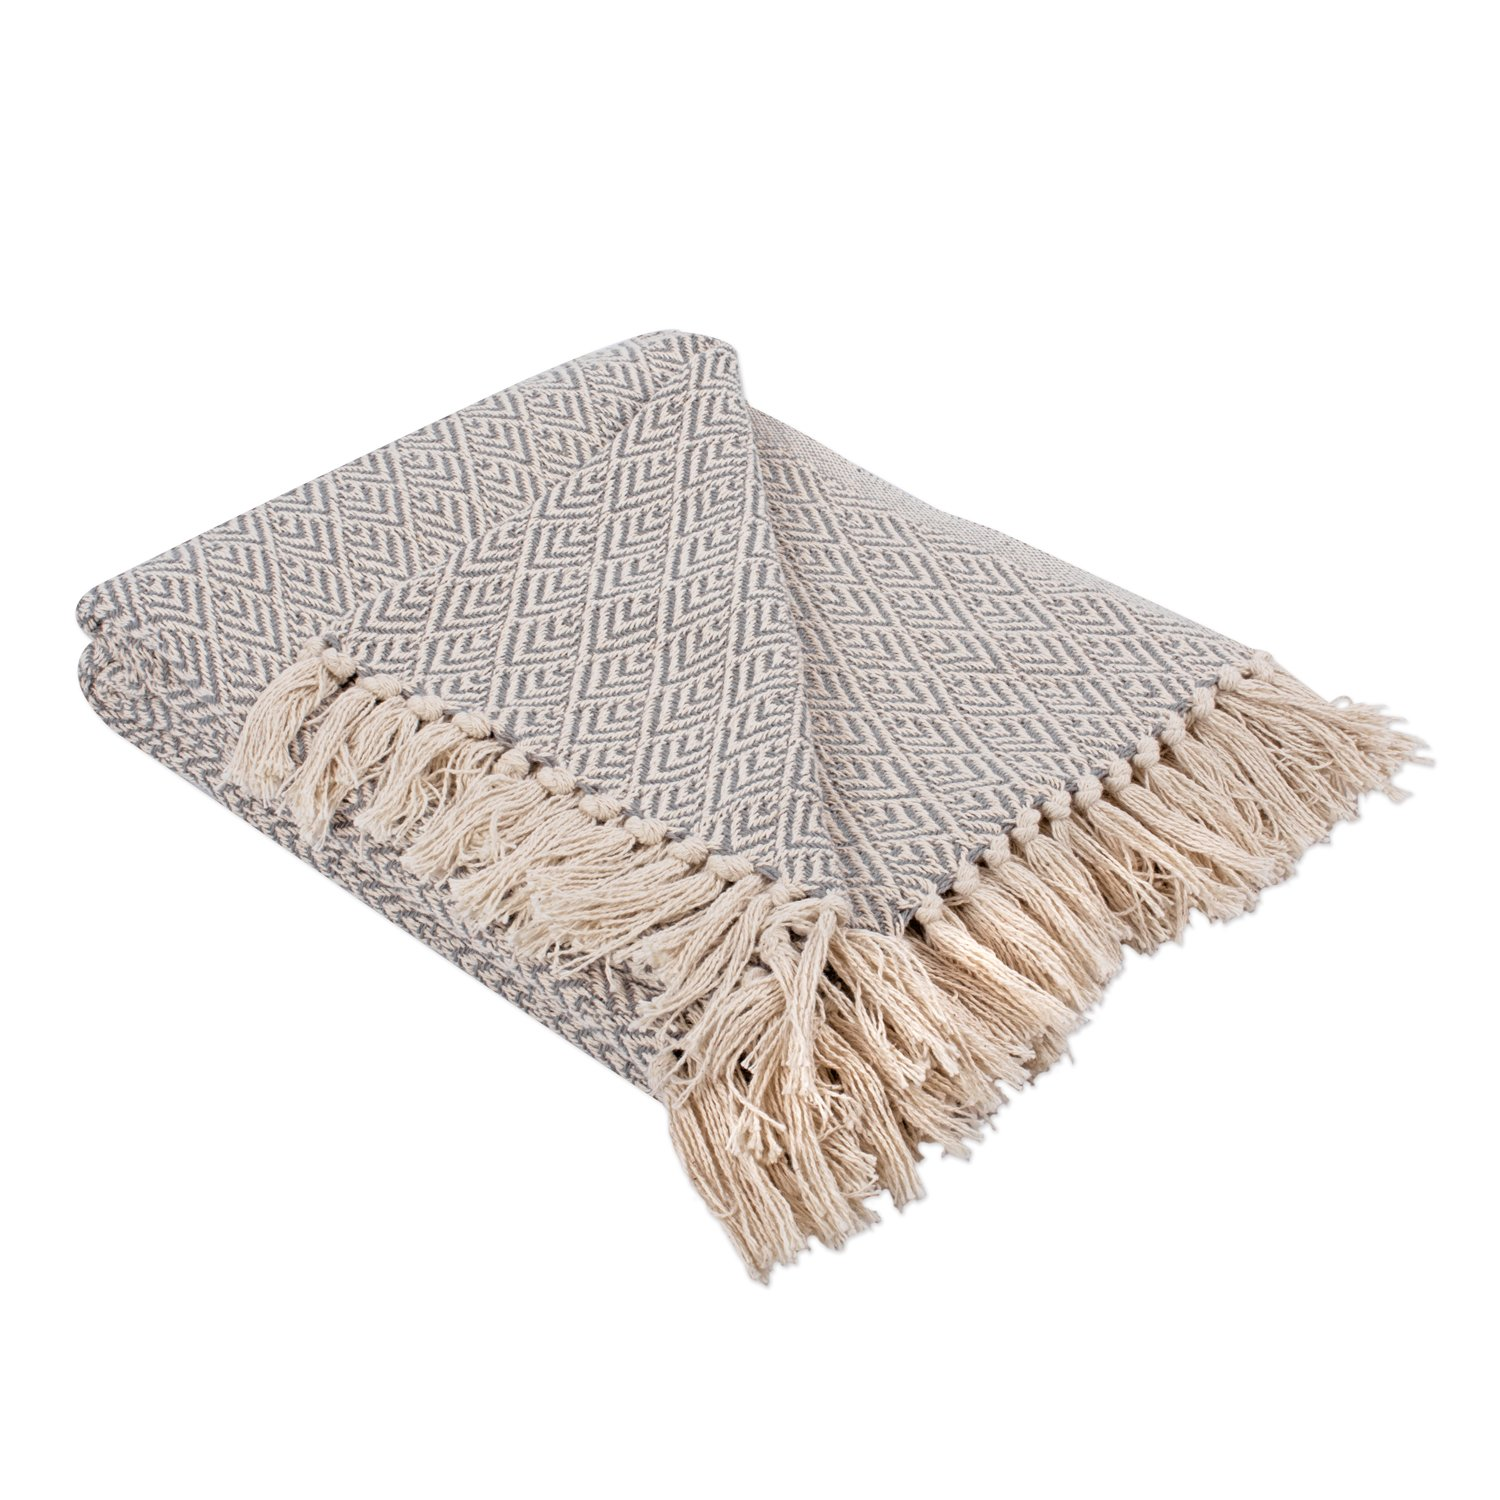 DII Rustic Farmhouse Cotton Diamond Blanket Throw with Fringe for Chair, Couch, Picnic, Camping, Beach, Everyday Use, 50 x 60 - Diamond Gray